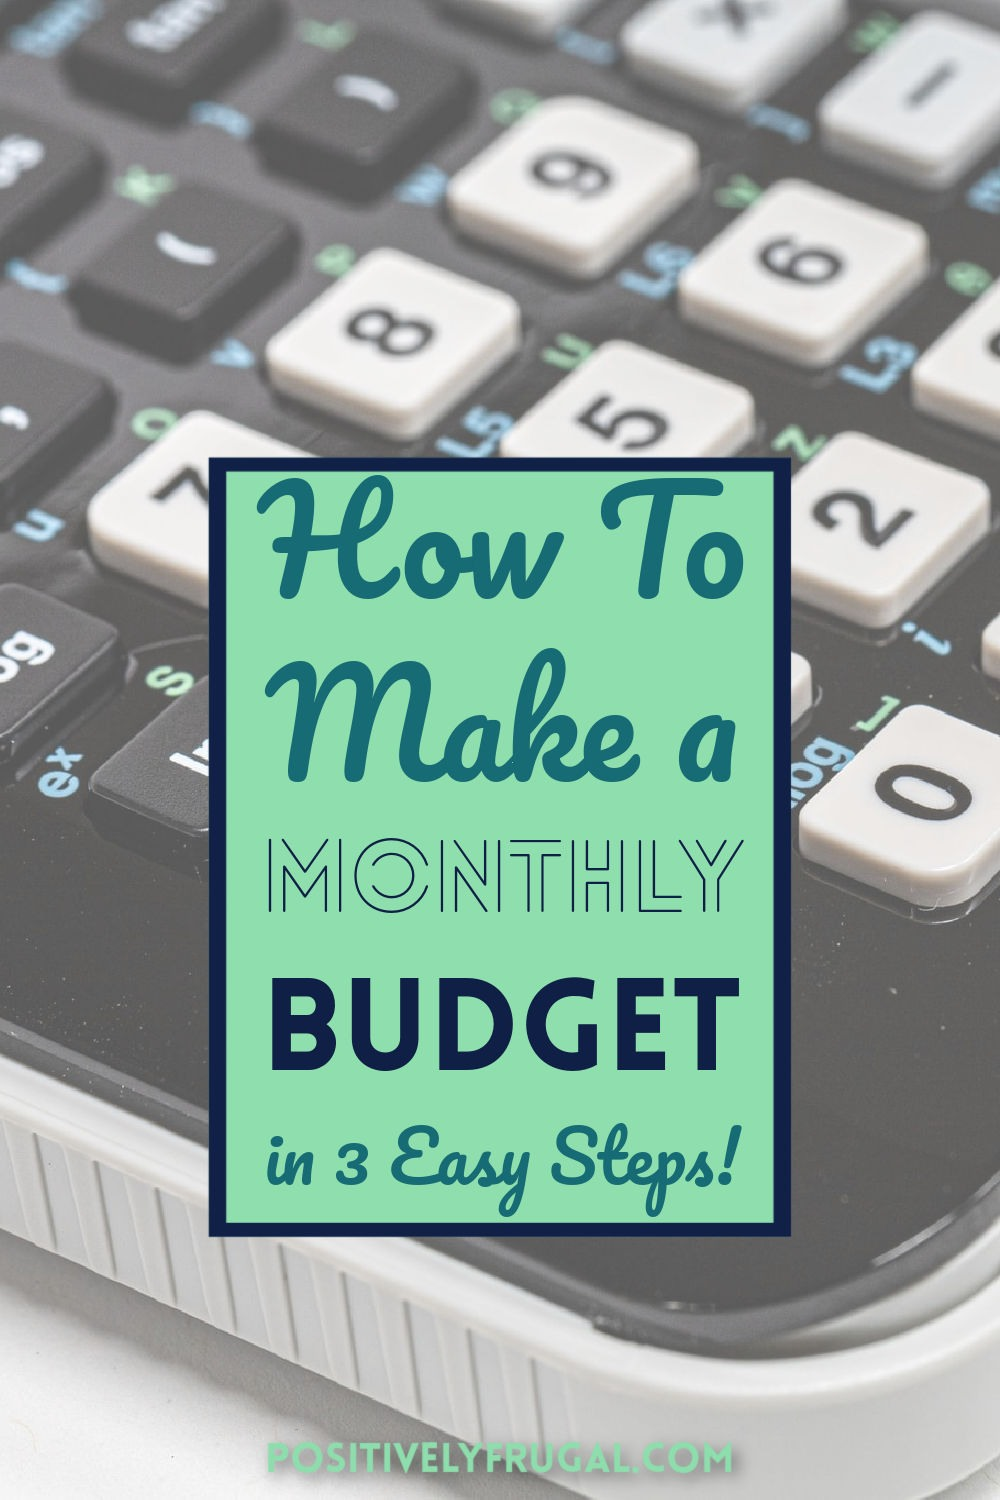 How To Make a Monthly Budget in 3 Steps by PositivelyFrugal.com